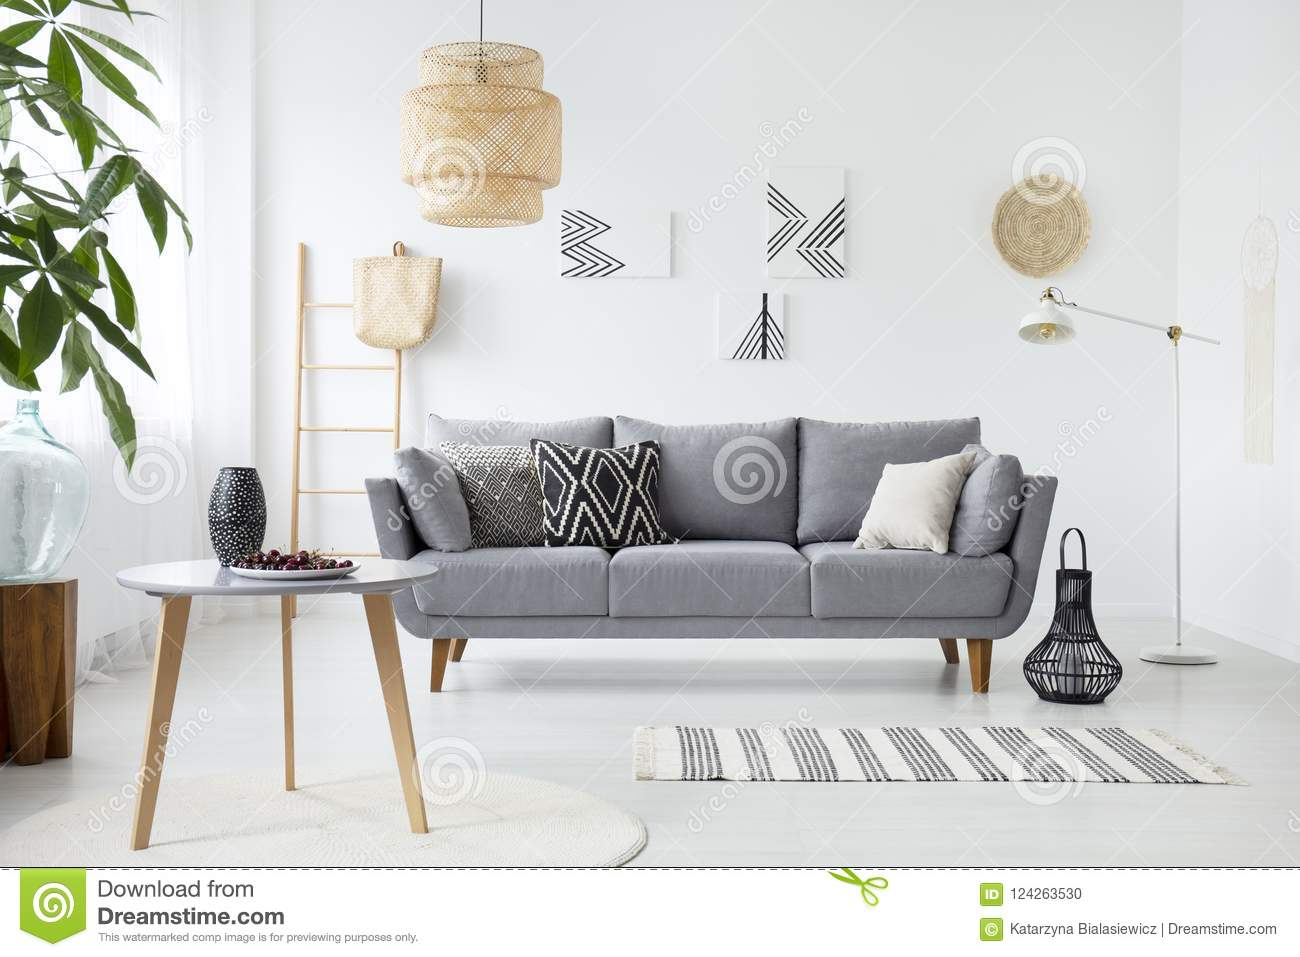 Real Photo Of A Simple Living Room Interior With Cushions On Gray